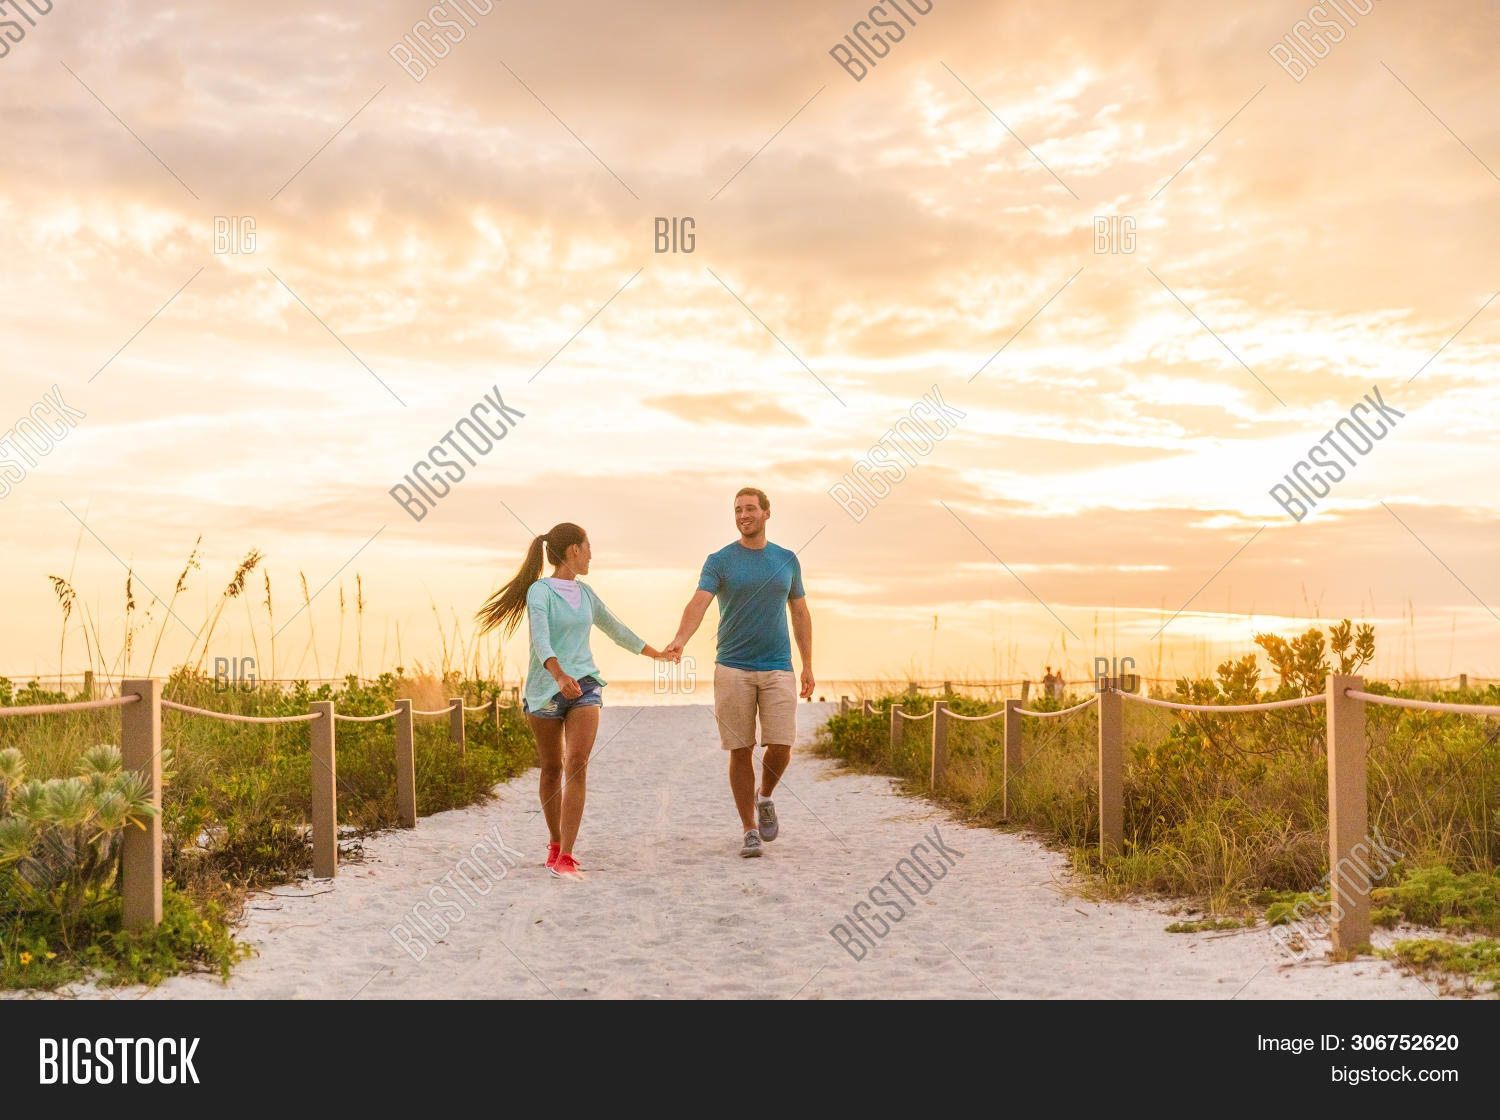 Happy young couple in love walking on romantic beach stroll at sunset. Lovers holding hands on Flori